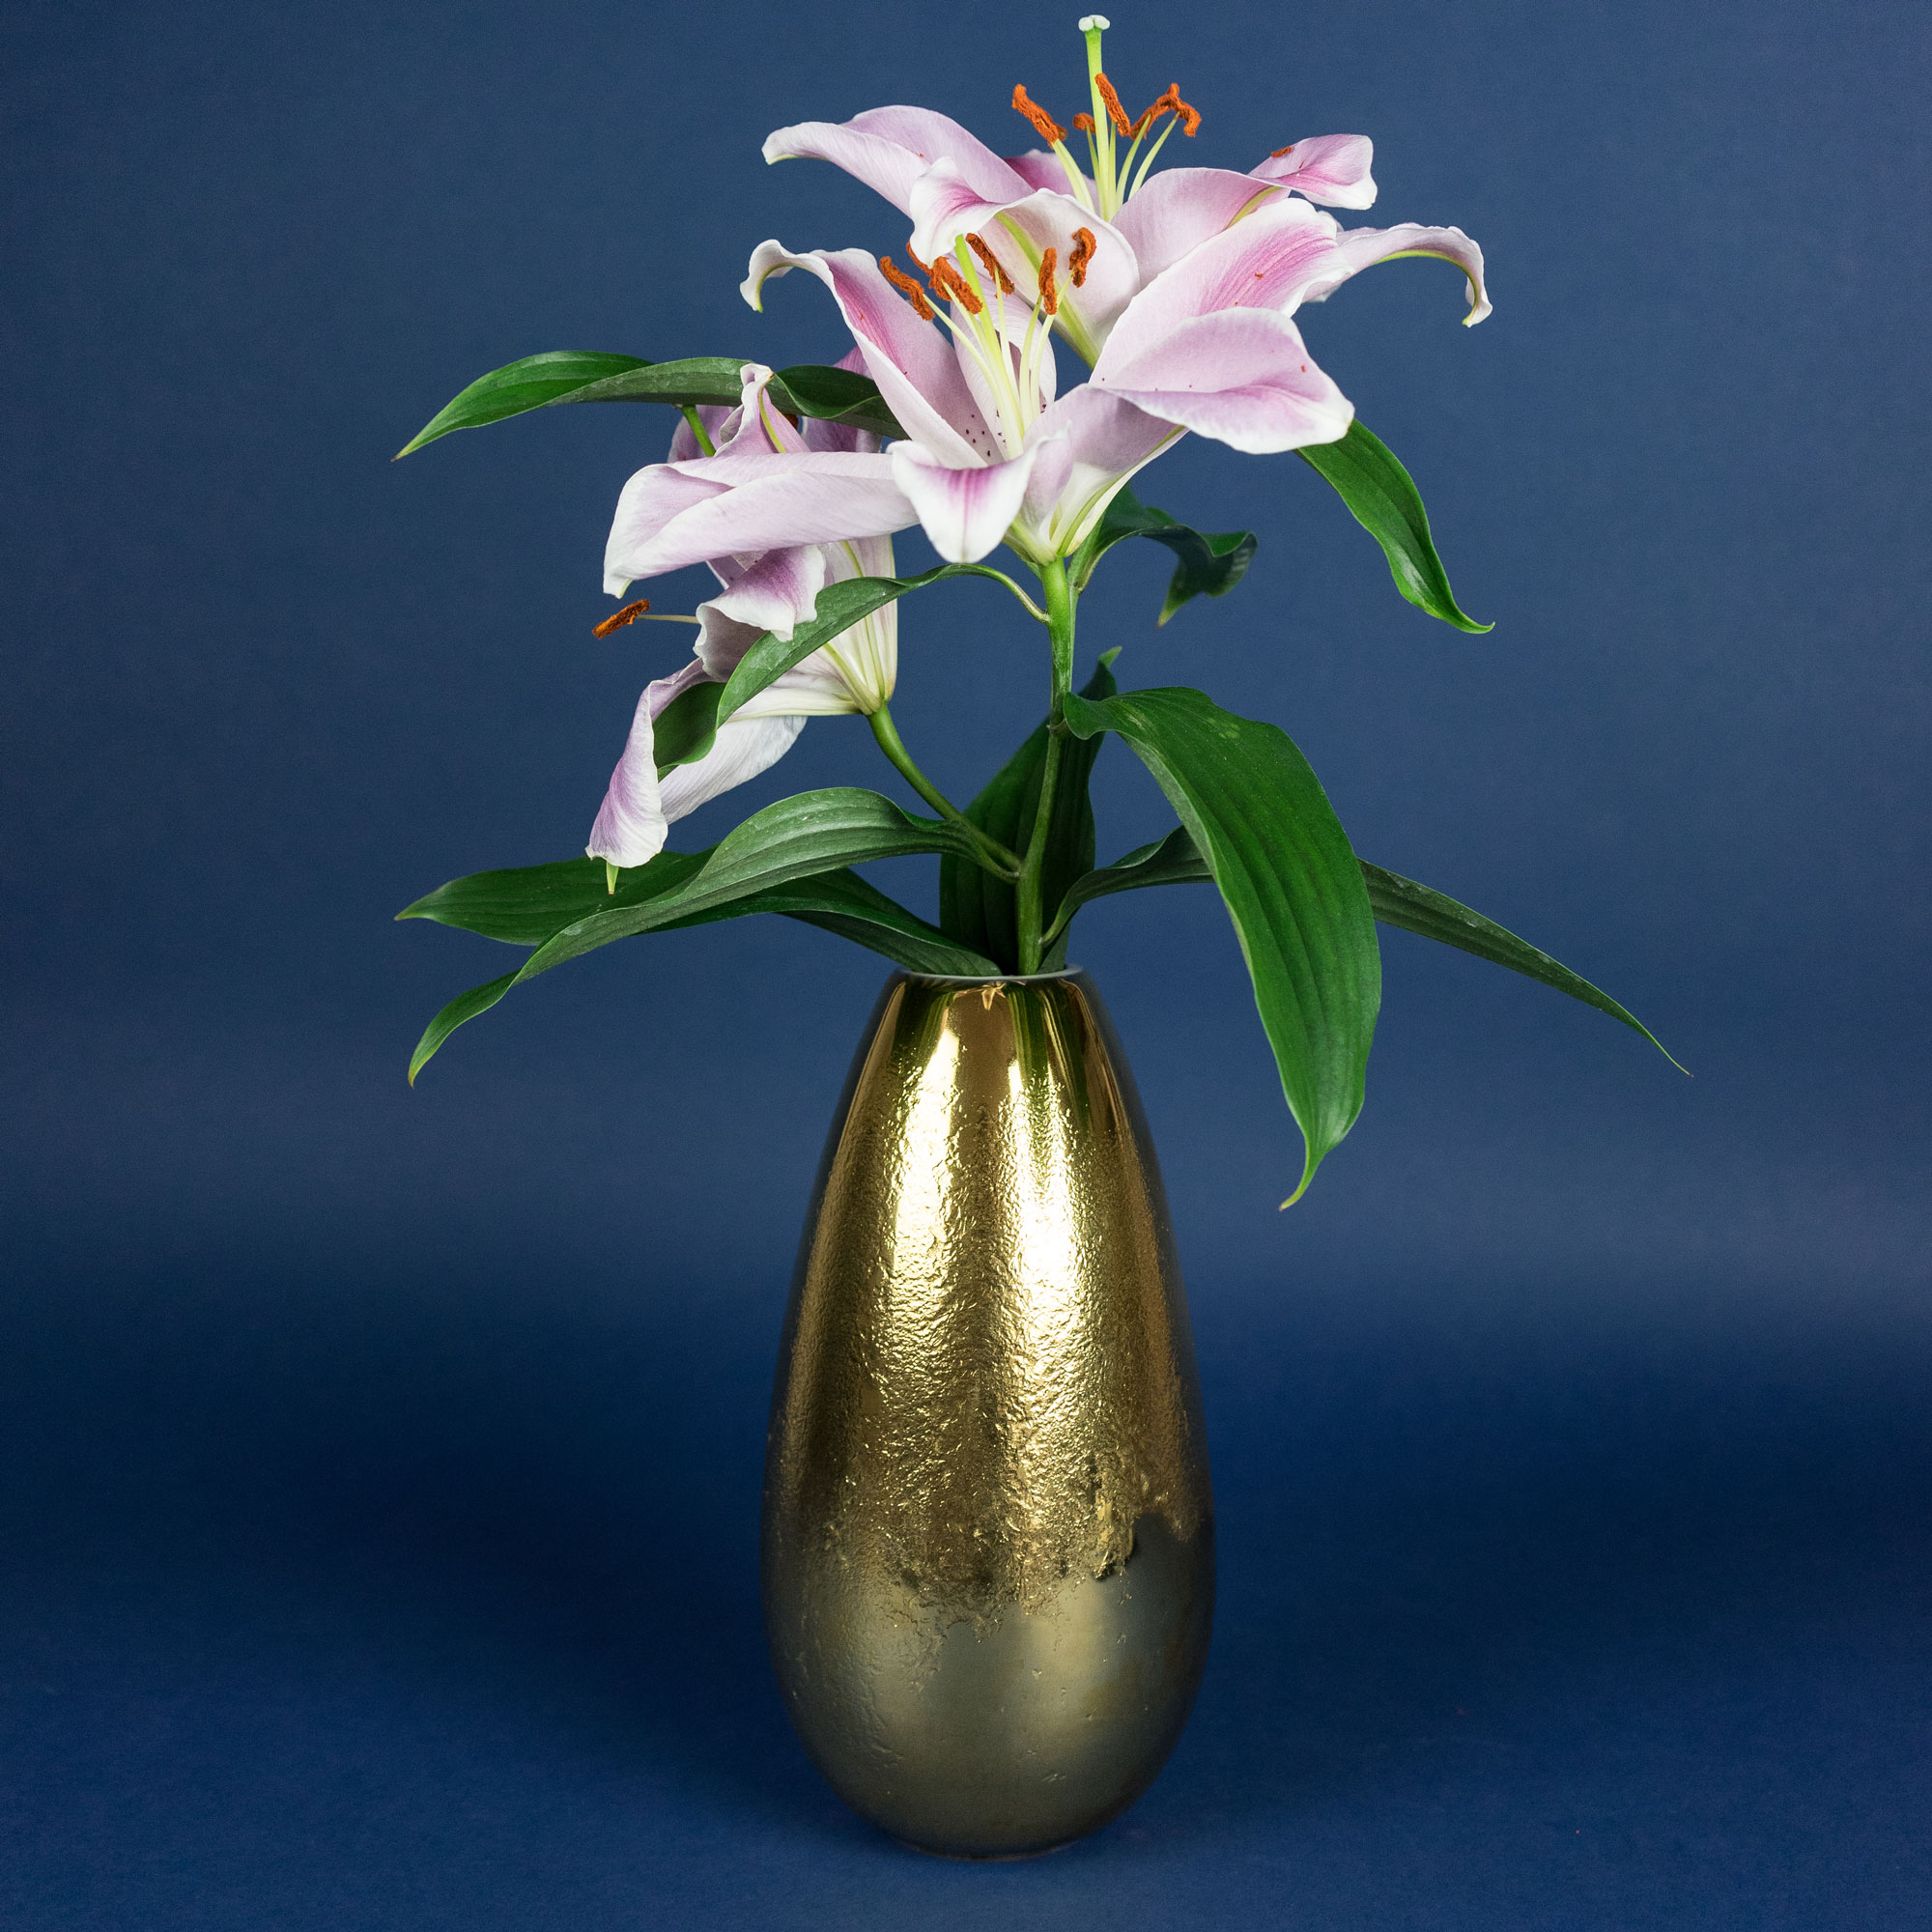 Fryst gold vase with flowers by Nalejto